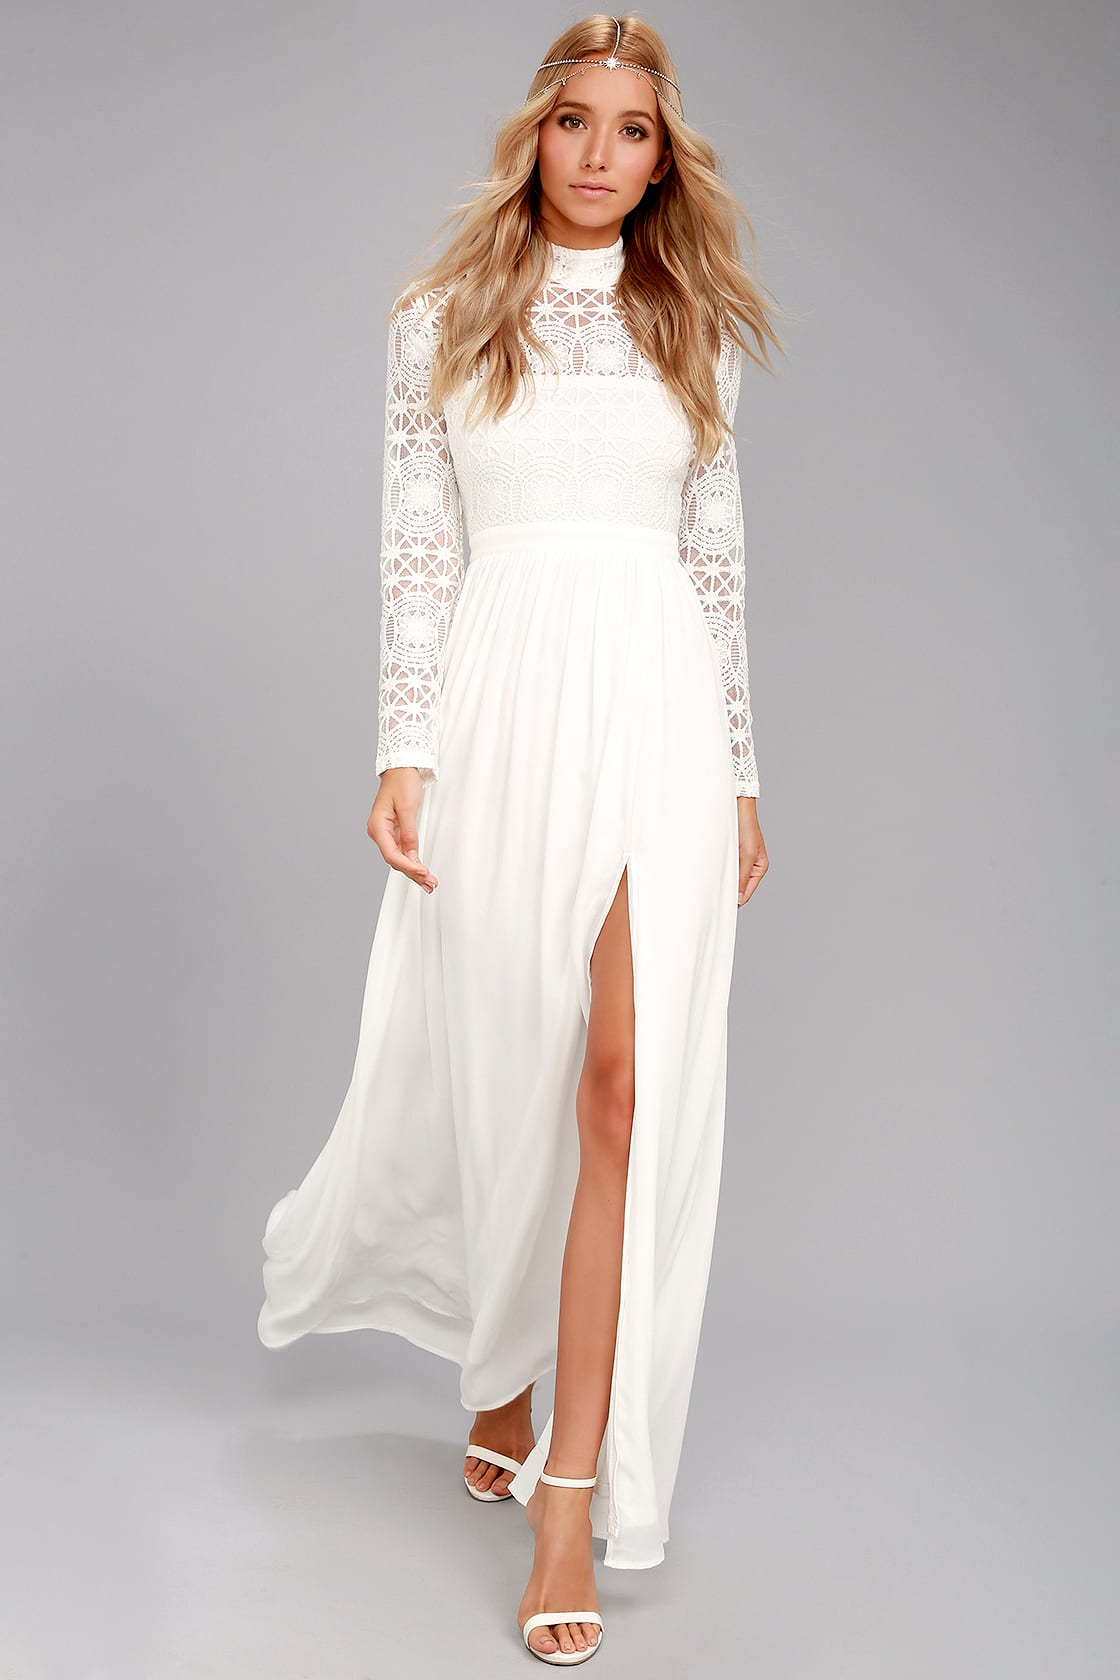 Affordable lace long sleeve white dress with thigh slit